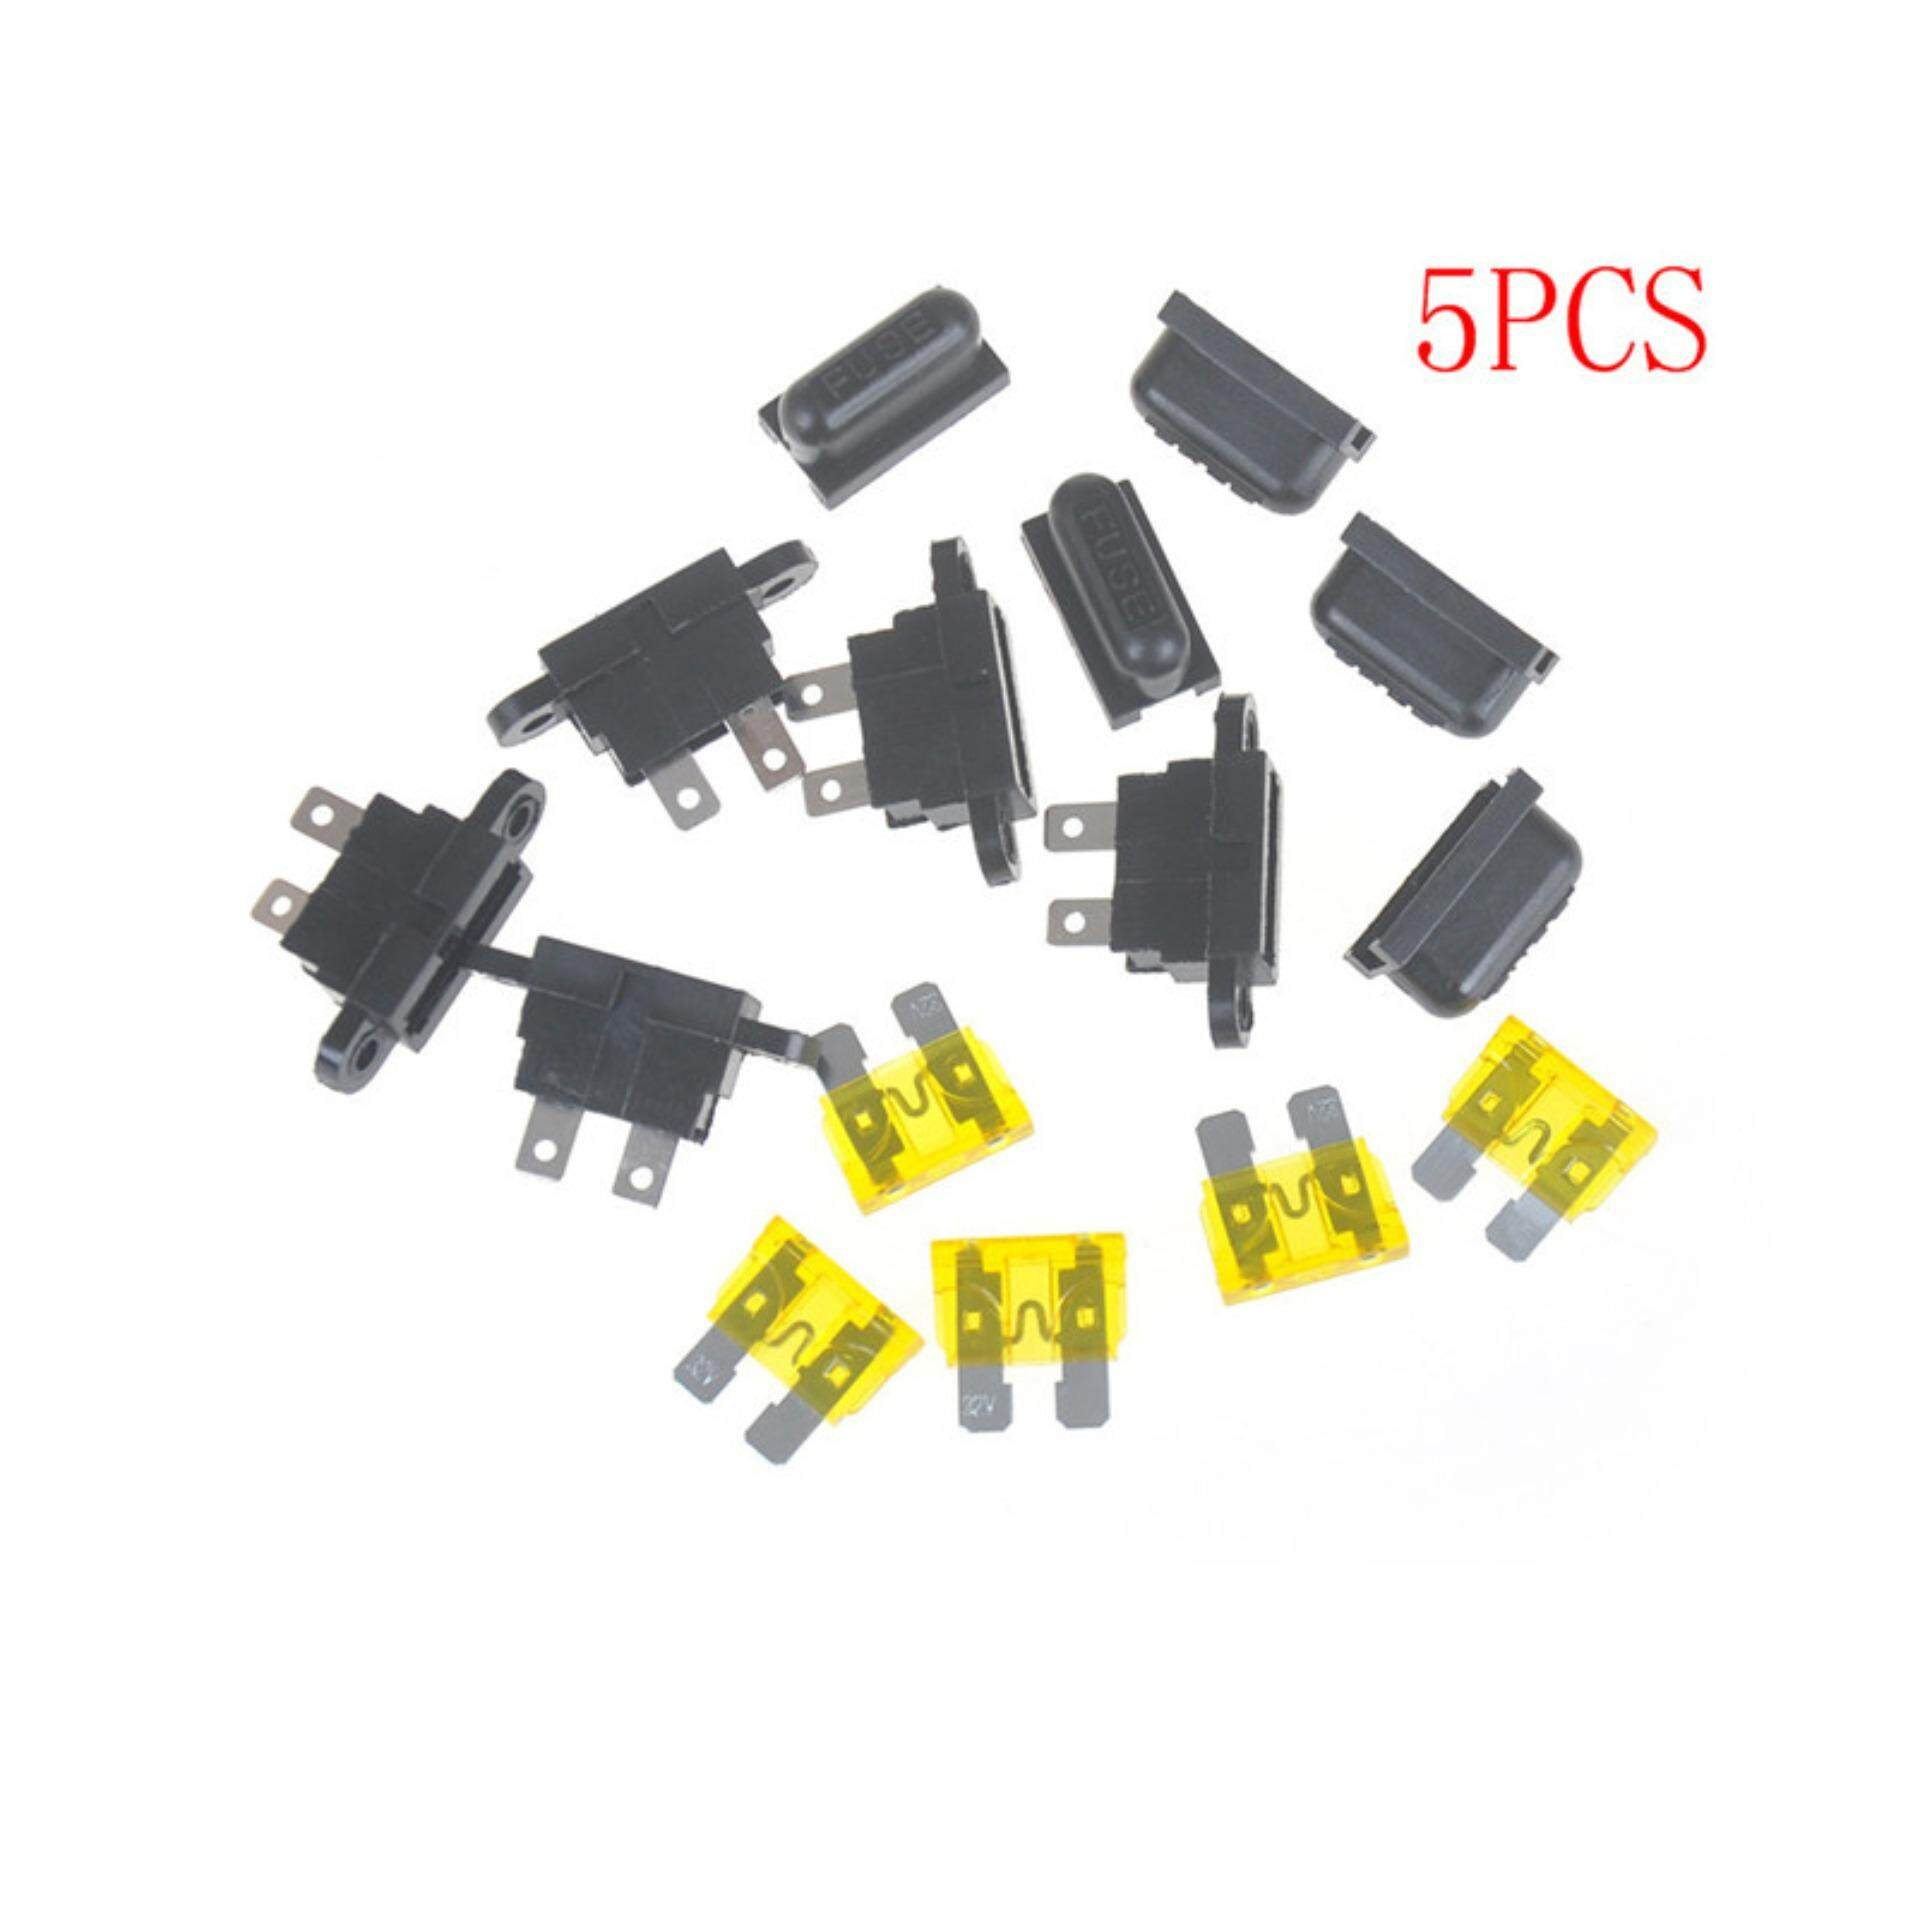 Auto Parts Spares Buy At Best Price In Cobalt Boat Fuse Box Amp Blade Standard Holder For Car Truck With Cover